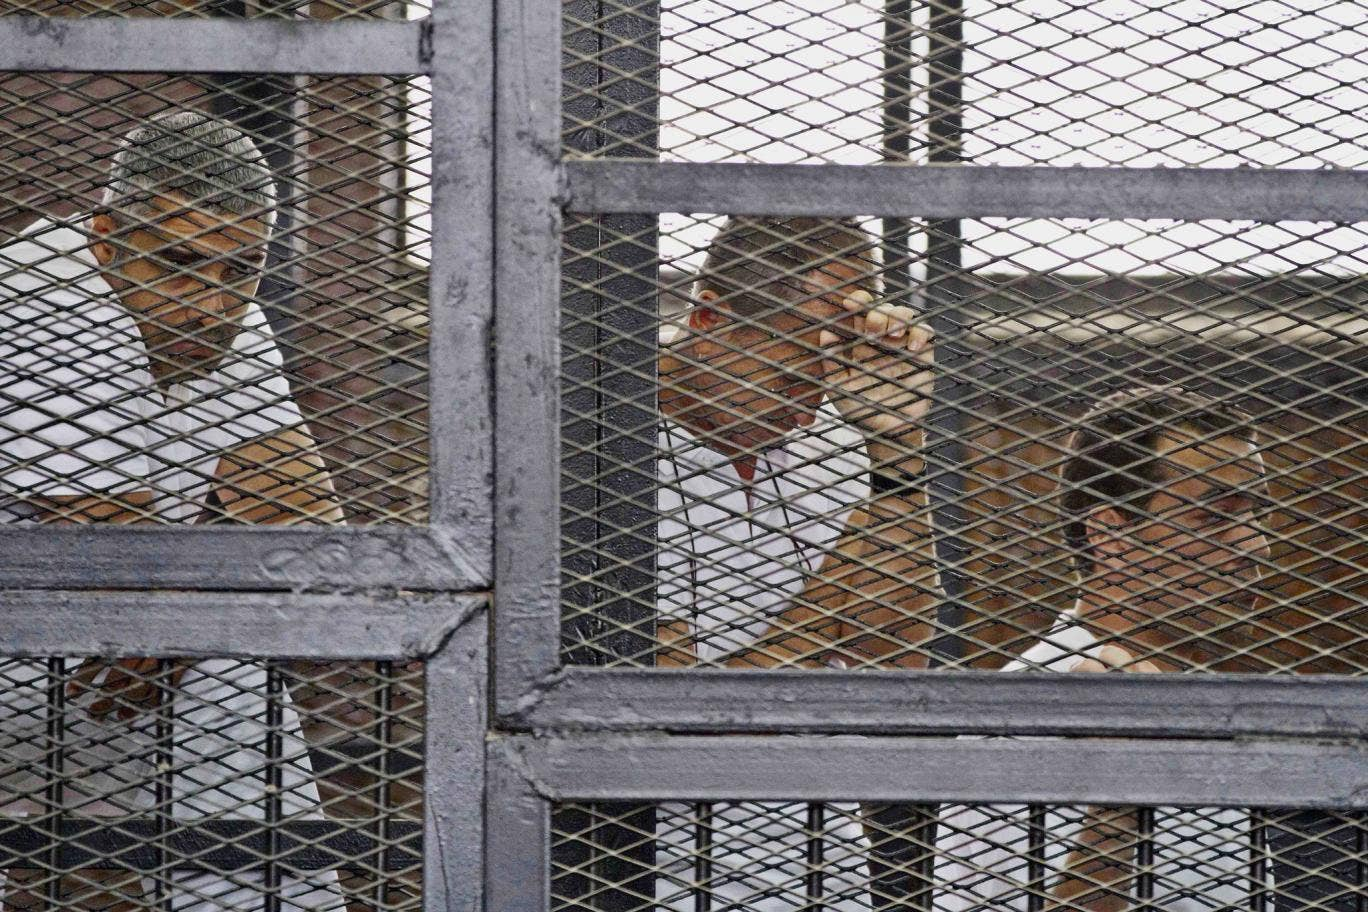 In this Thursday, May 15, 2014 file photo, from left, Mohammed Fahmy, Canadian-Egyptian acting bureau chief of Al-Jazeera, Australian correspondent Peter Greste, and Egyptian producer Baher Mohamed appear in a defendant's cage along with several other def